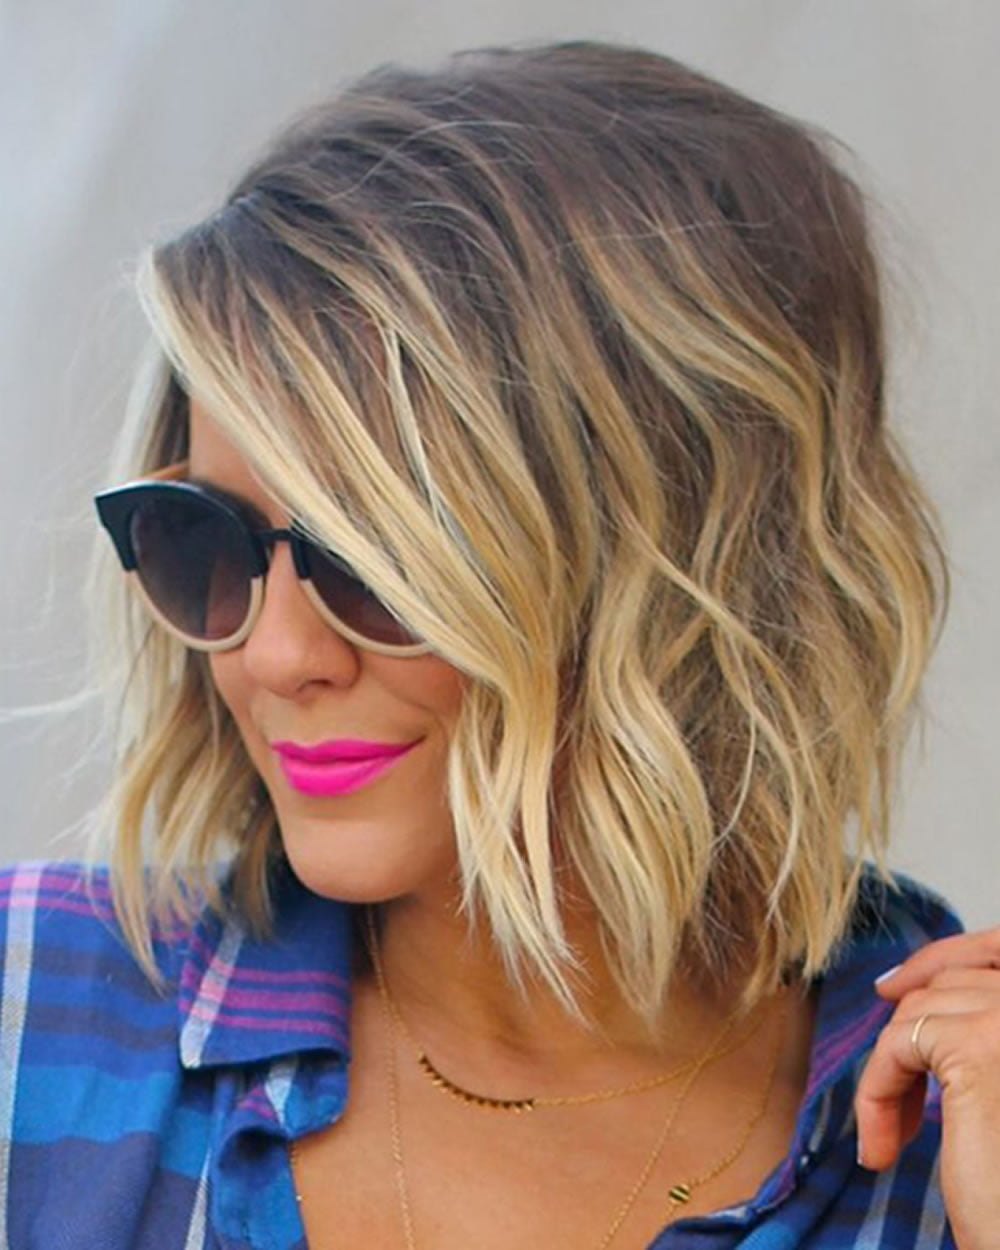 20 Latest Mixed 2018 Short Haircuts For Women BobPixie